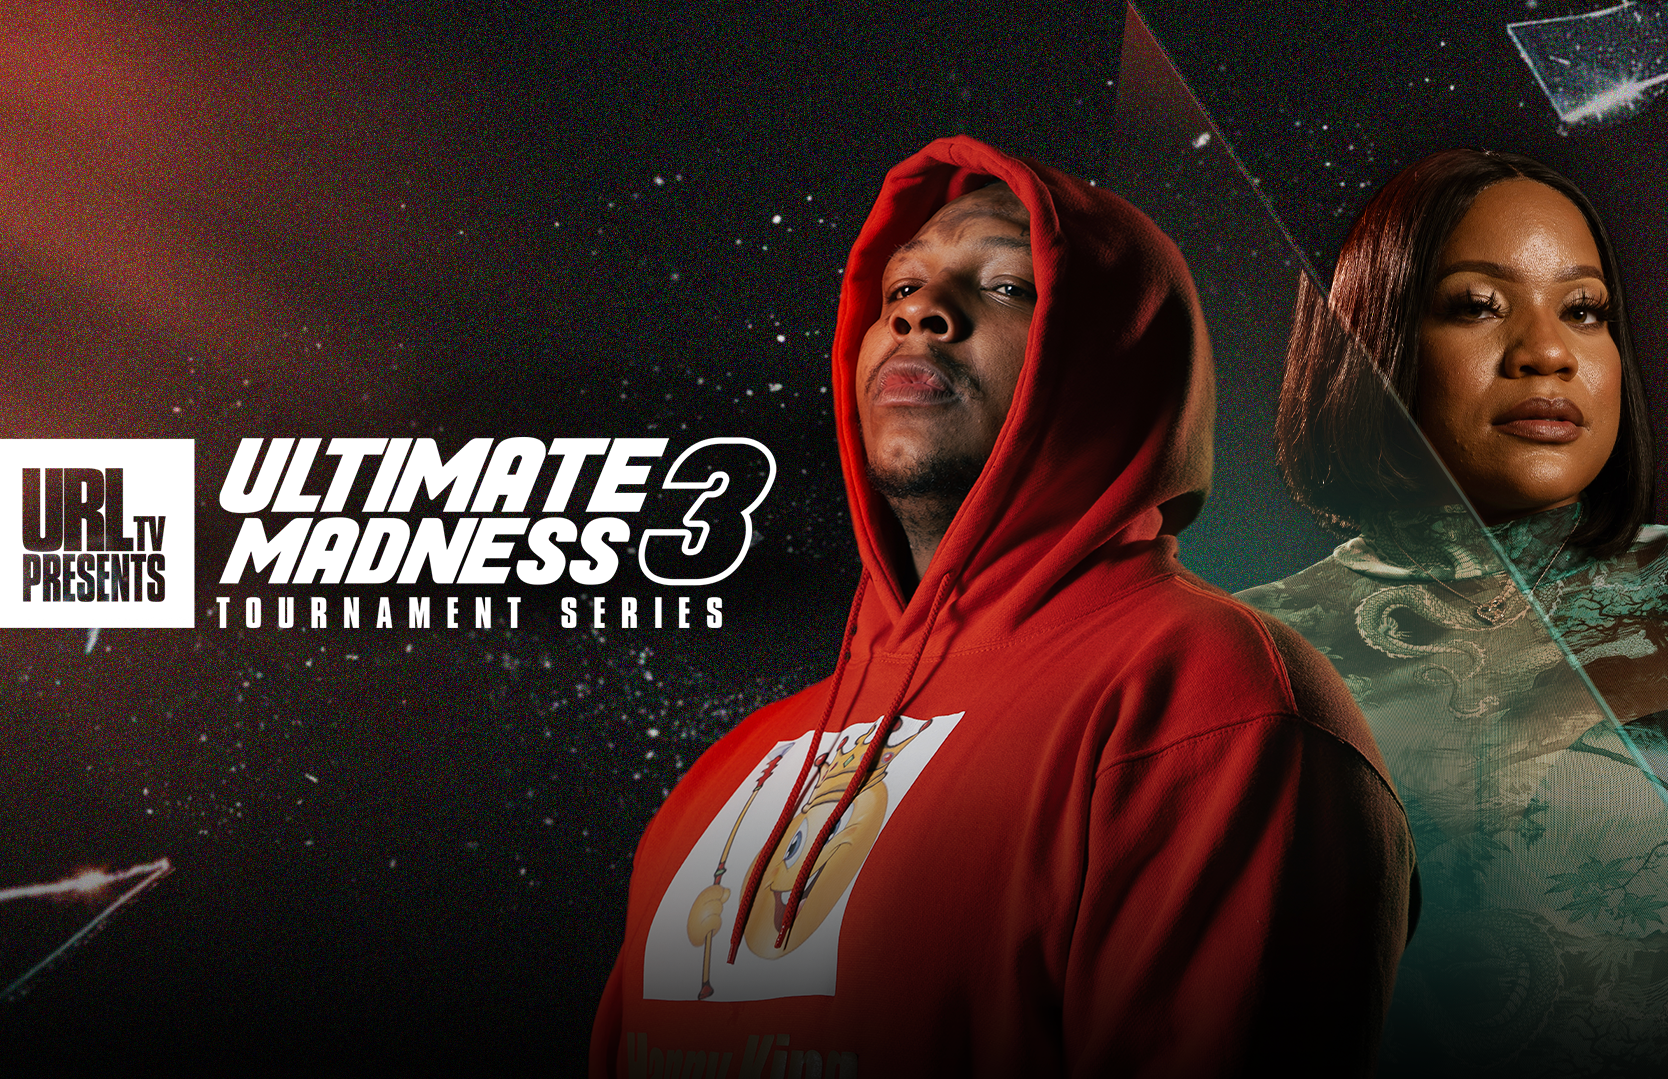 Ultimate Rap League's Ultimate Madness 3 Tournament Pits Rising Stars Against Vets